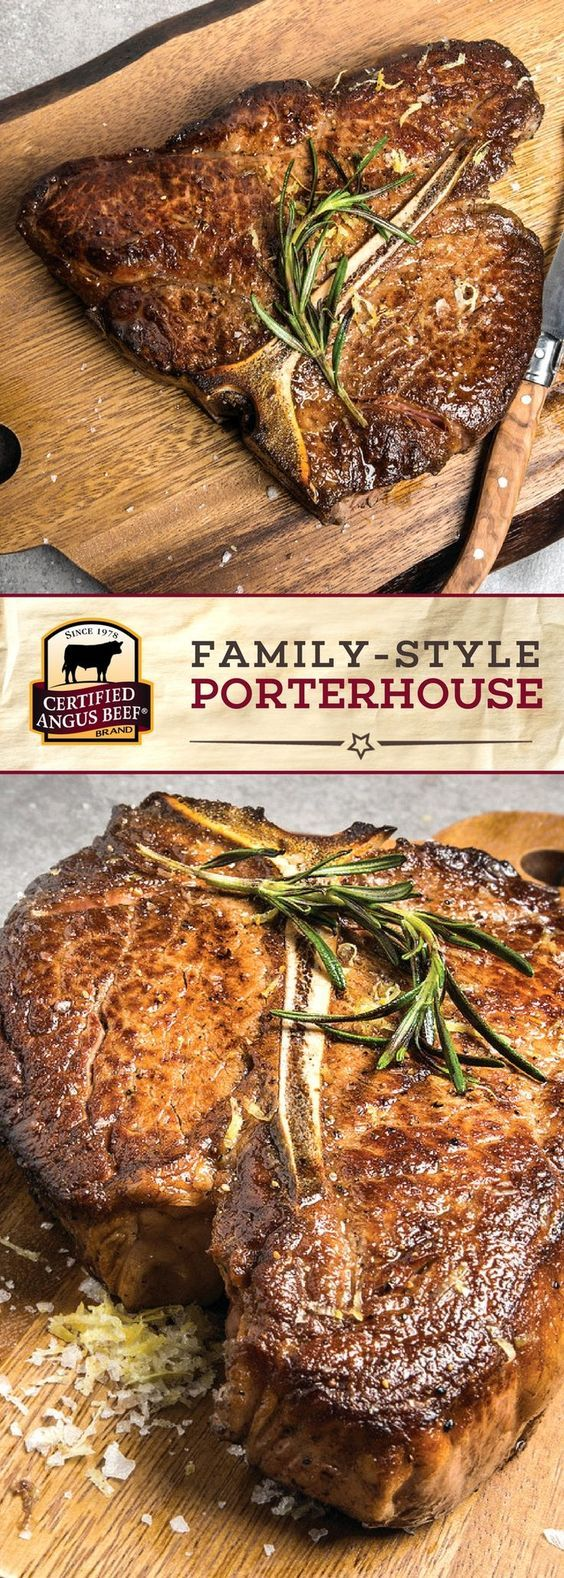 Certified Angus Beef®️️️️️️ brand Family-style Porterhouse is made with the best thick porterhouse steak and an EASY spice blend for a delicious steak dinner! Rosemary and lemon bring out the deep flavors of this incredibly tasty cut of beef. Perfect for a family meal or a meal for two! #bestangusbeef #certifiedangusbeef #beefrecipe #dinnerrecipes #steakrecipes